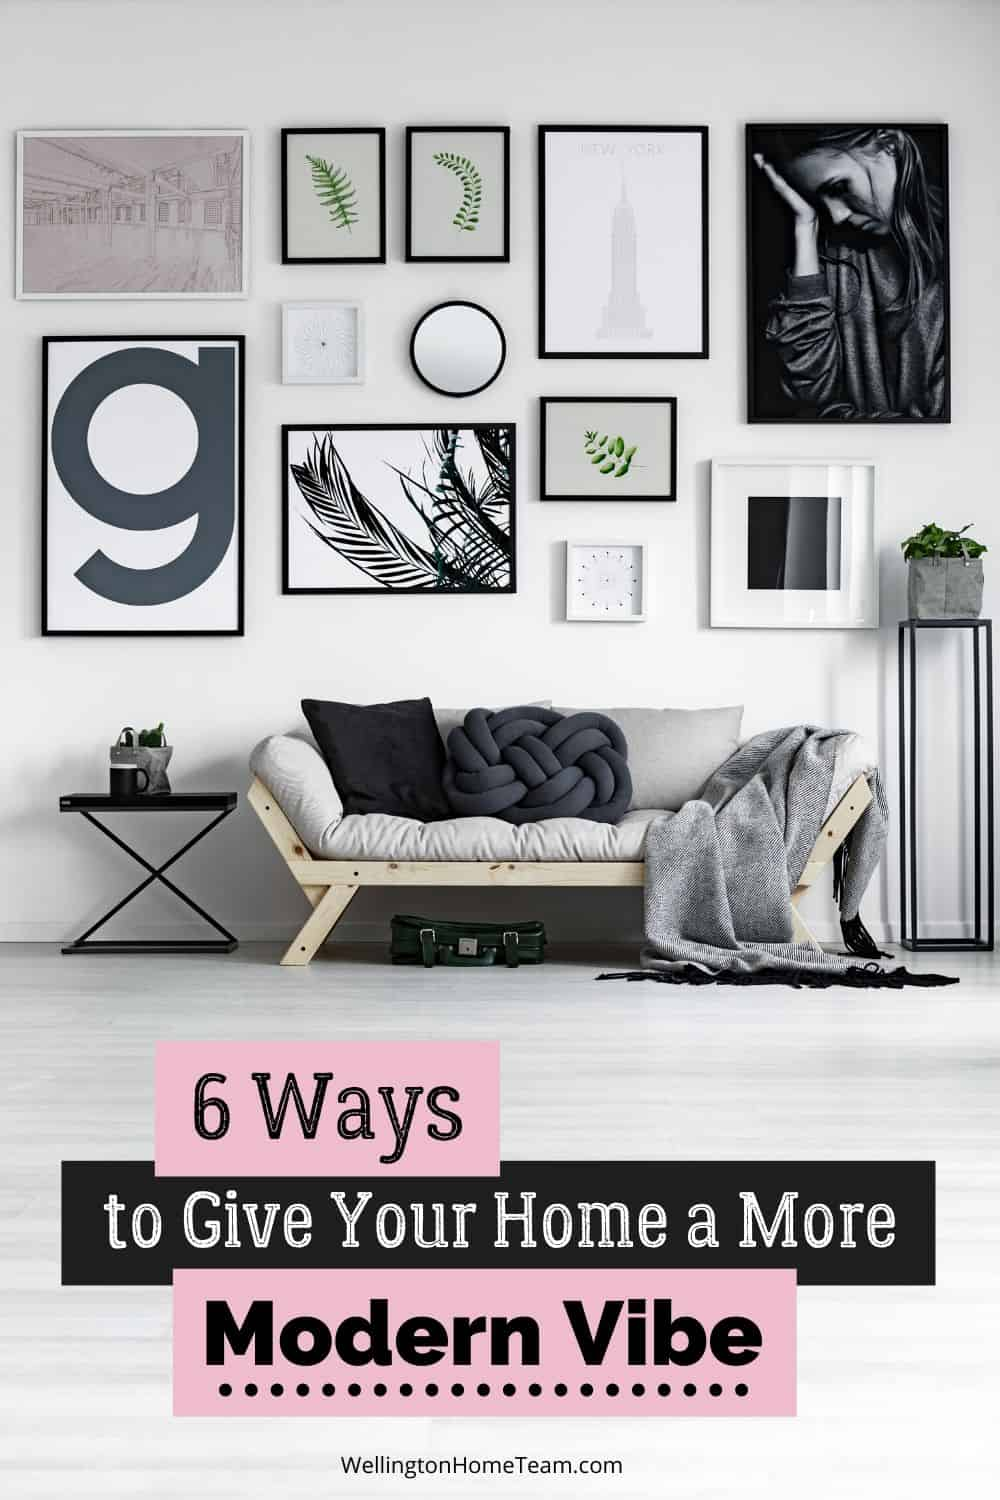 Six Ways to Give Your Home a More Modern Vibe | WellingtonHomeTeam